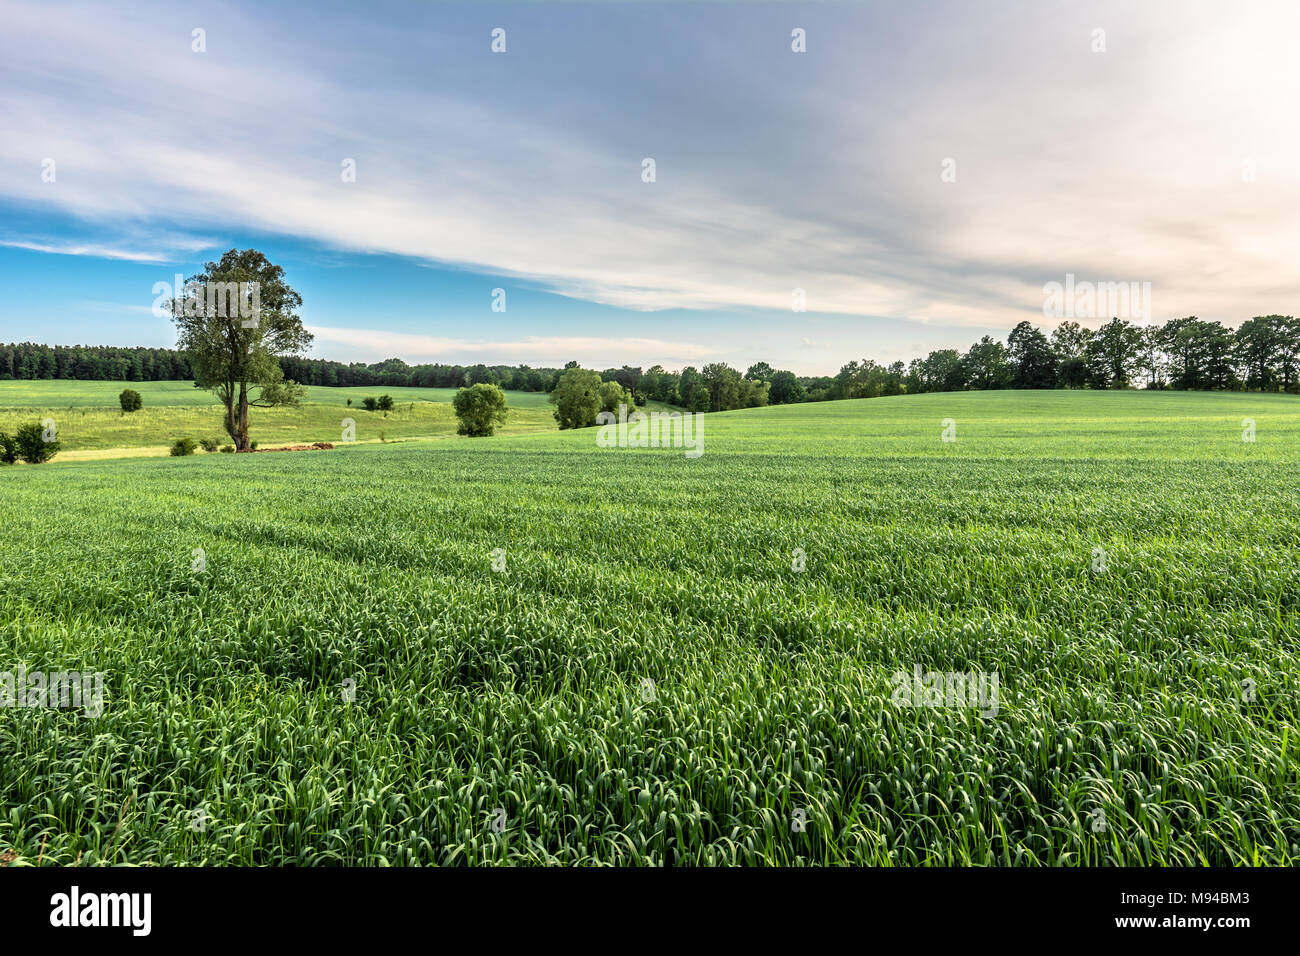 Green field landscape at spring, fresh green grass, agricultural area with cereal cultivation Stock Photo